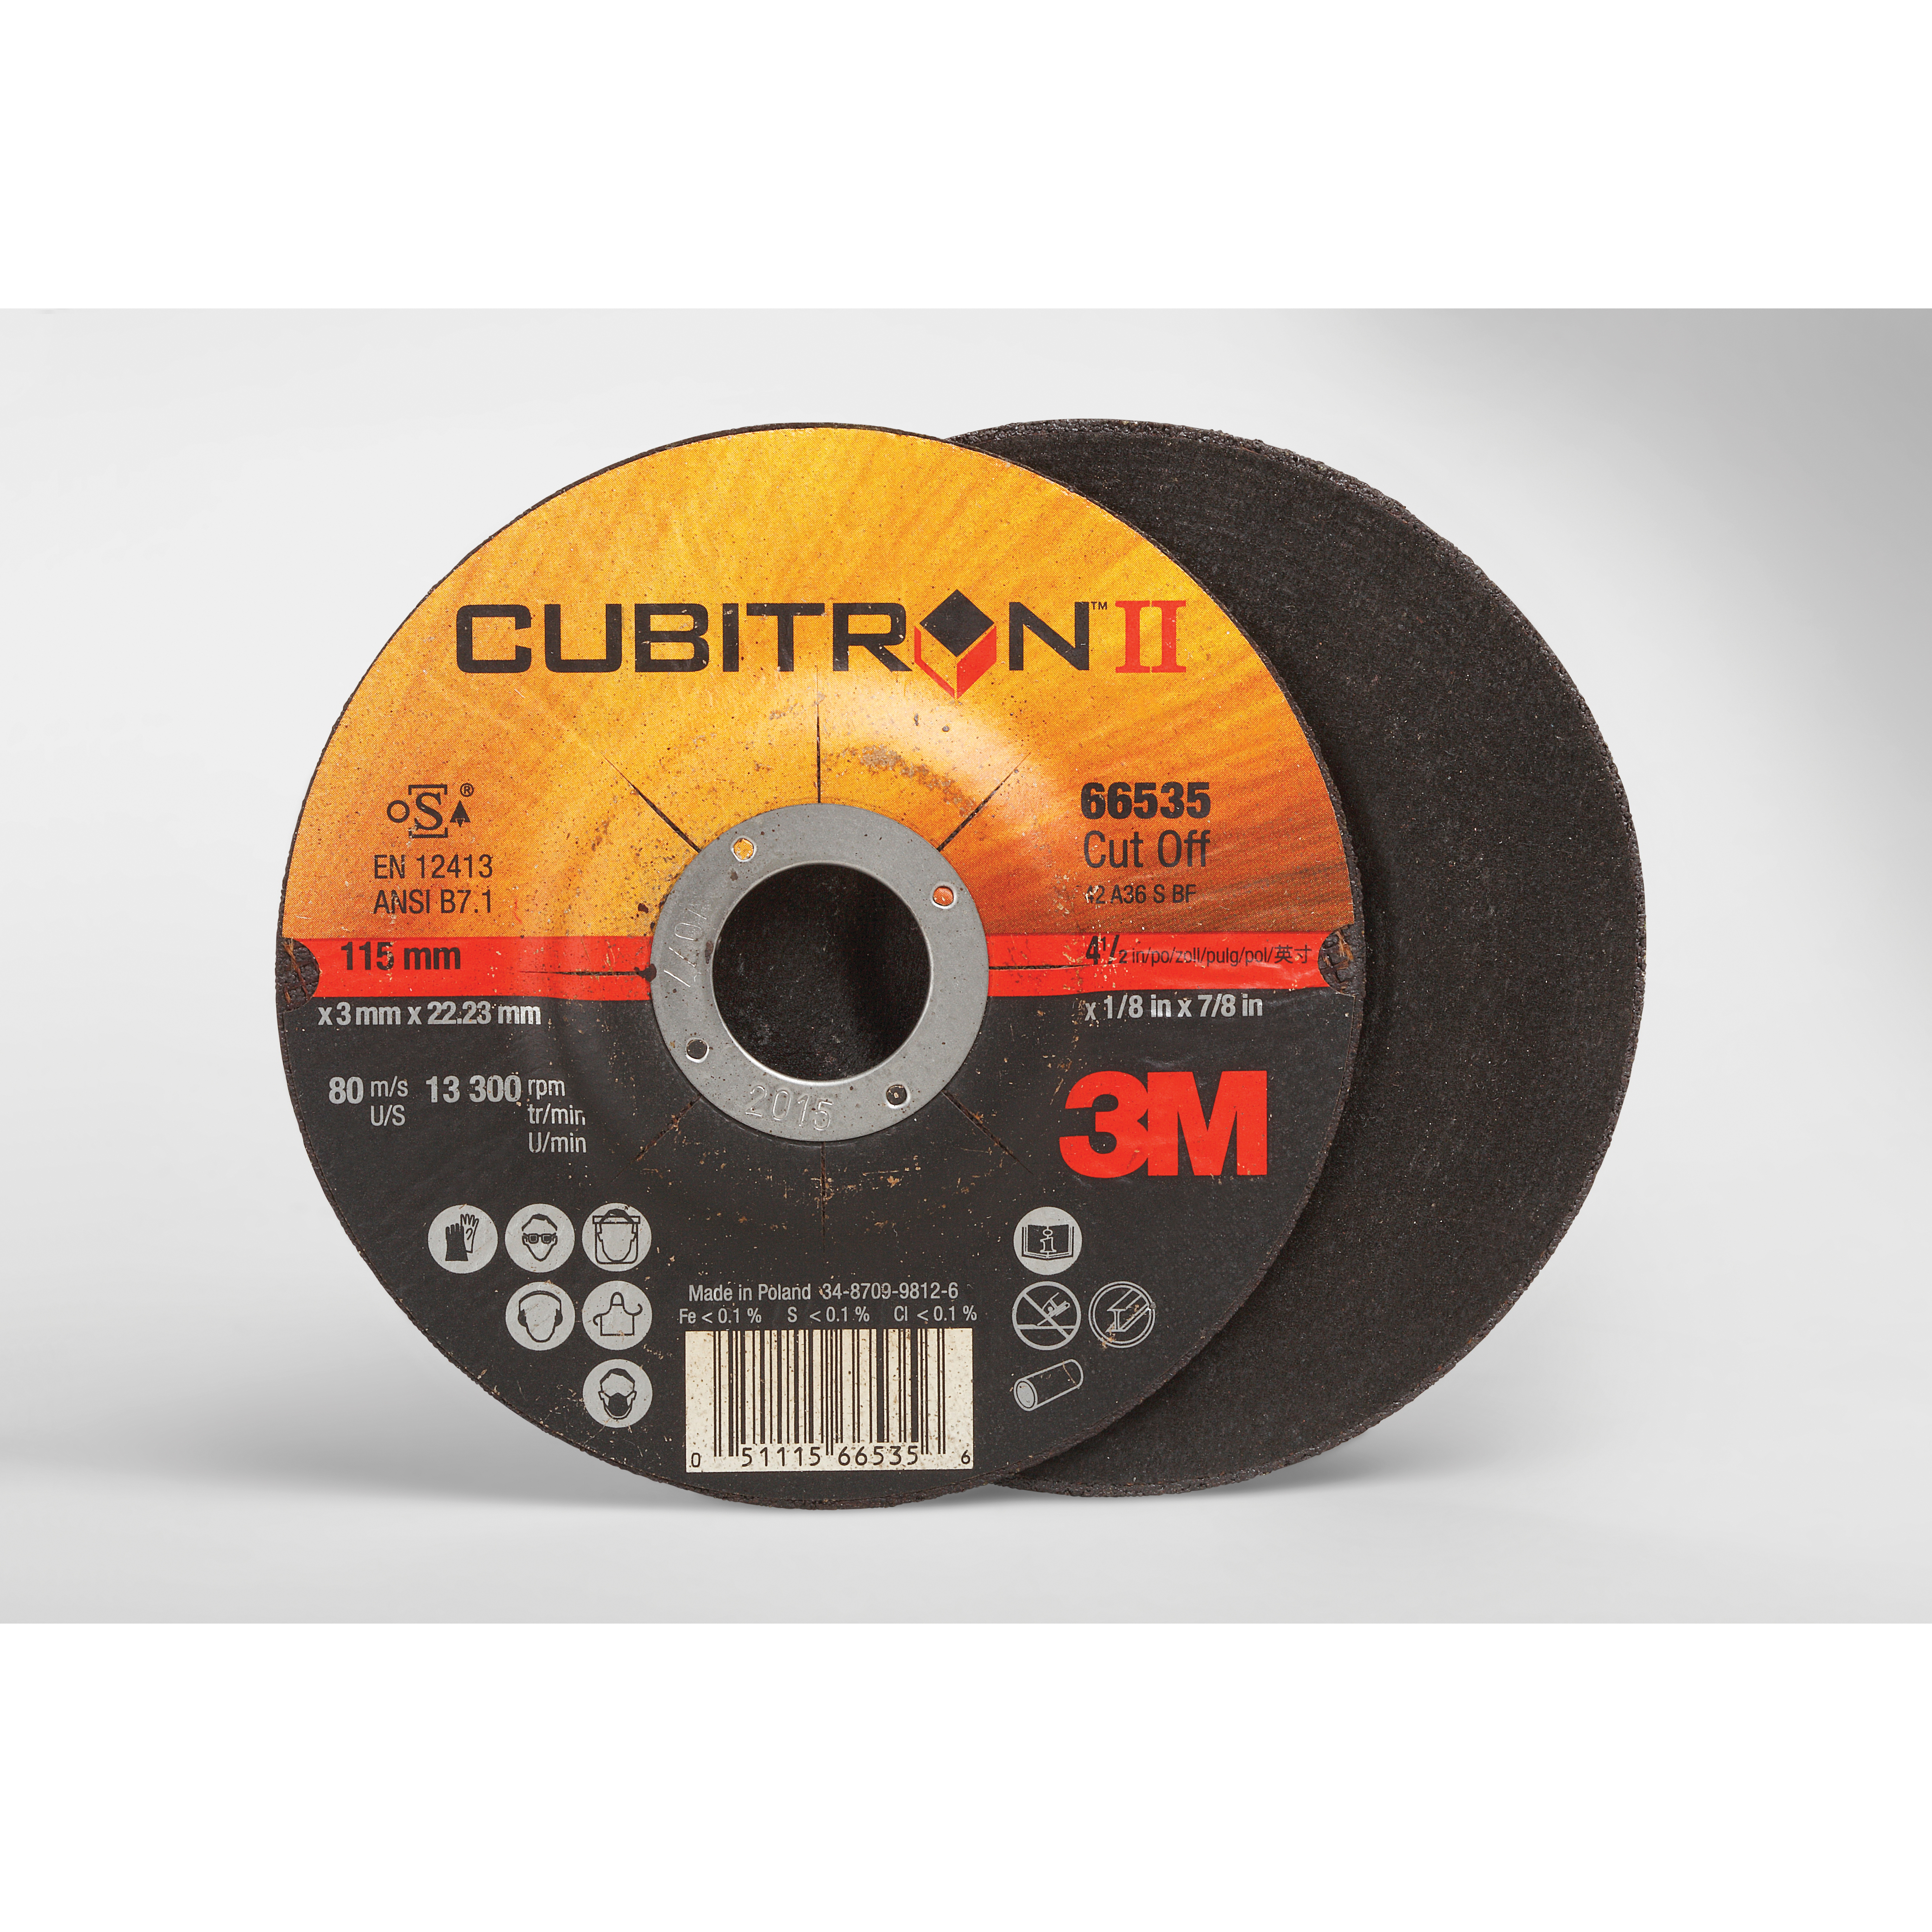 3M™ Cubitron™ II 051115-66535 COW Type 27 Cut-Off Wheel, 4-1/2 in Dia x 1/8 in THK, 7/8 in Center Hole, 36 Grit, Precision Shaped Ceramic Abrasive